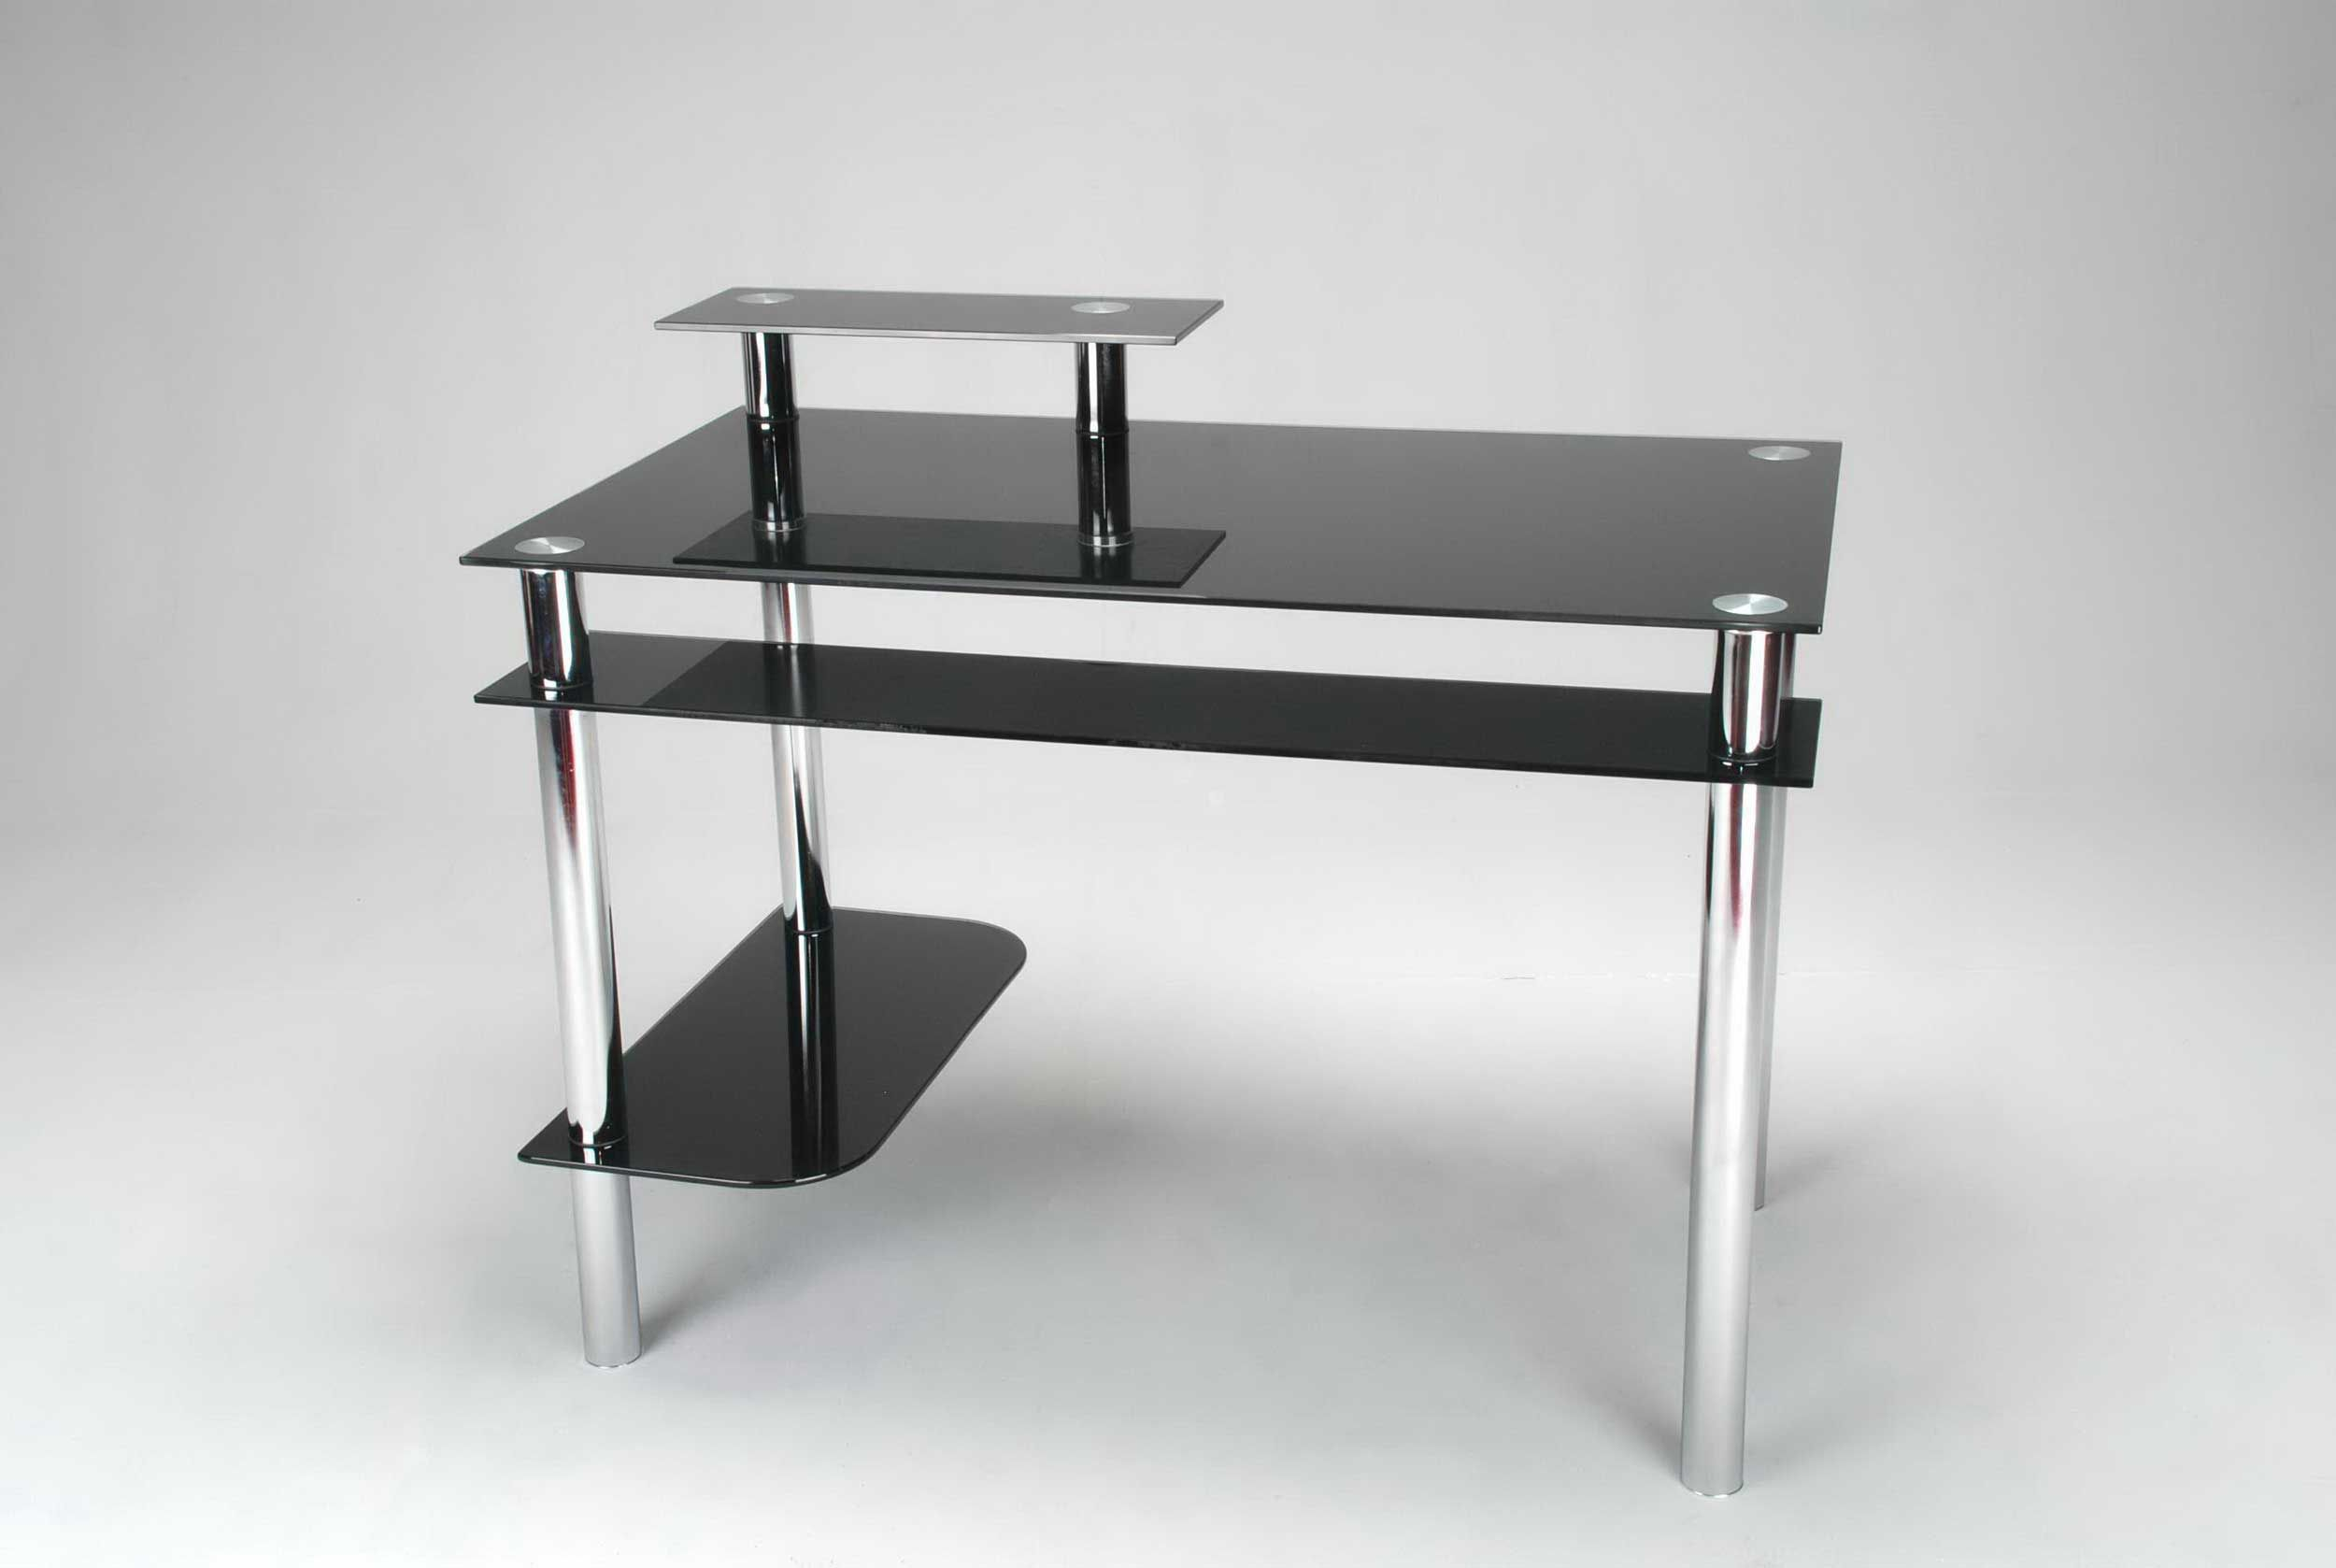 Black Glass Computer Desk Homebase | Doces Abobrinhas | Pinterest | Black Glass  Computer Desk, Black Glass And Glass Table